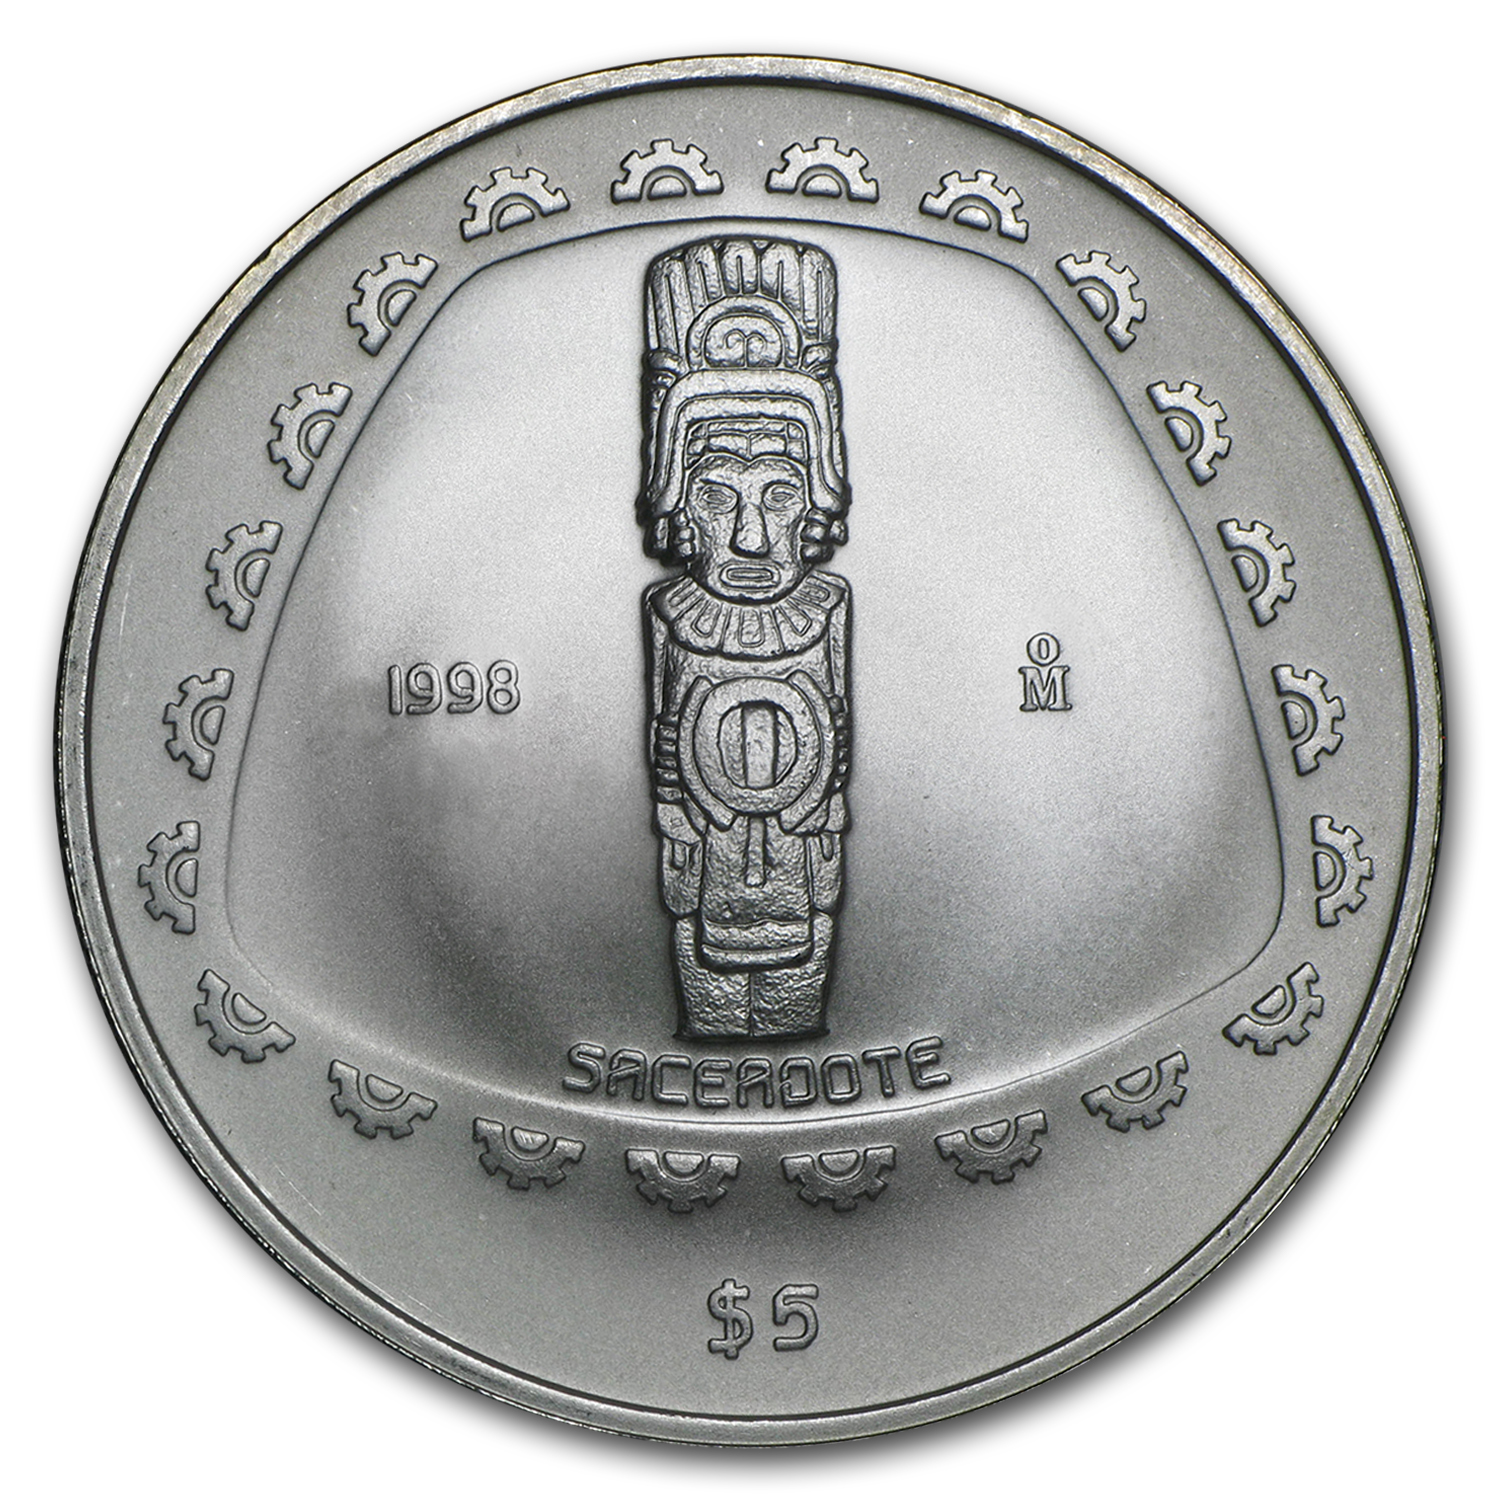 1998 Mexico 1 oz Silver 5 Pesos Sacerdote Proof